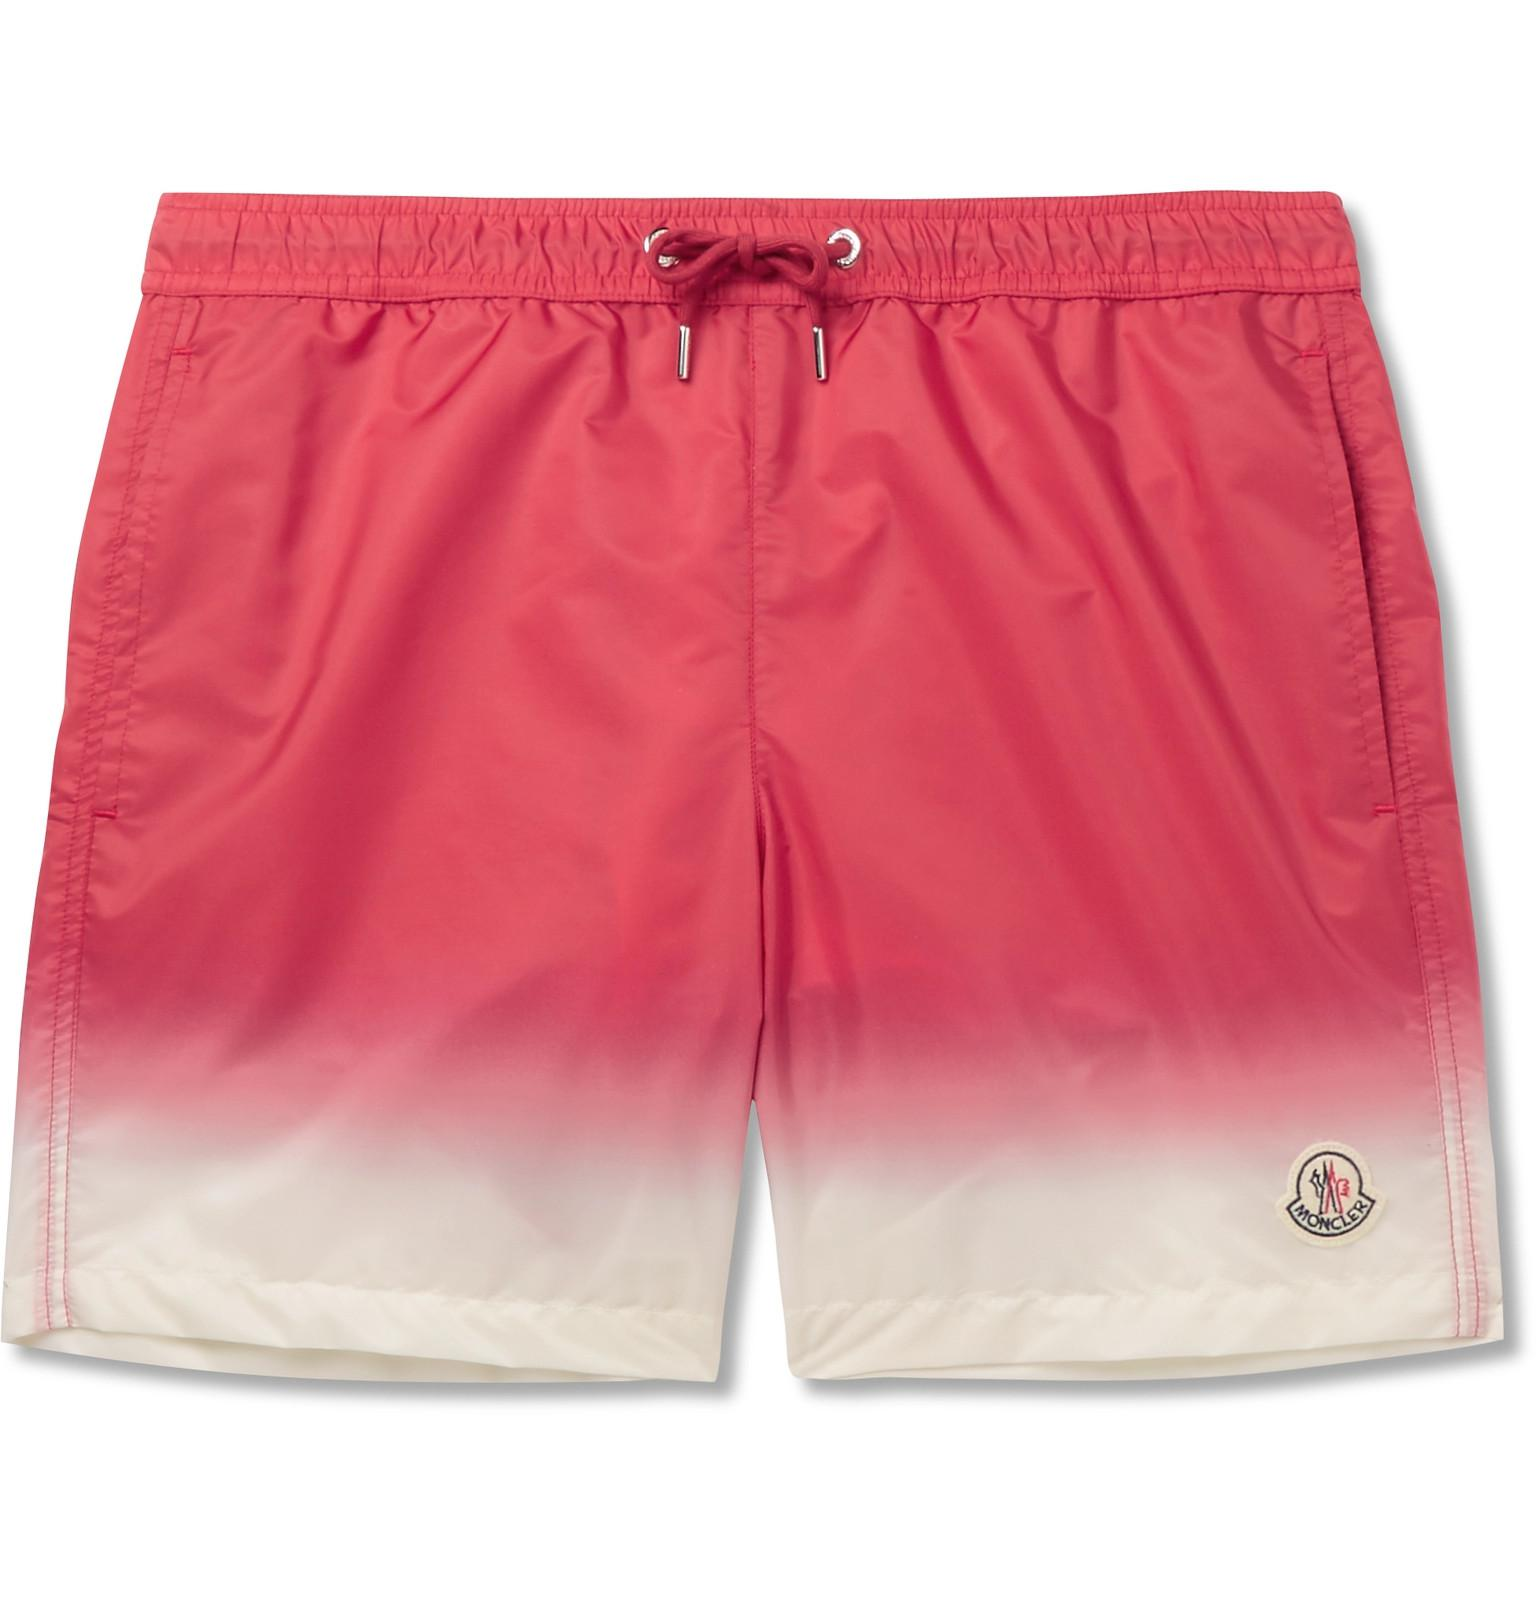 Cheap Low Price Mid-length Grosgrain-trimmed Swim Shorts Moncler Extremely Sale Online Manchester Sale Online Discounts OLYKqTC